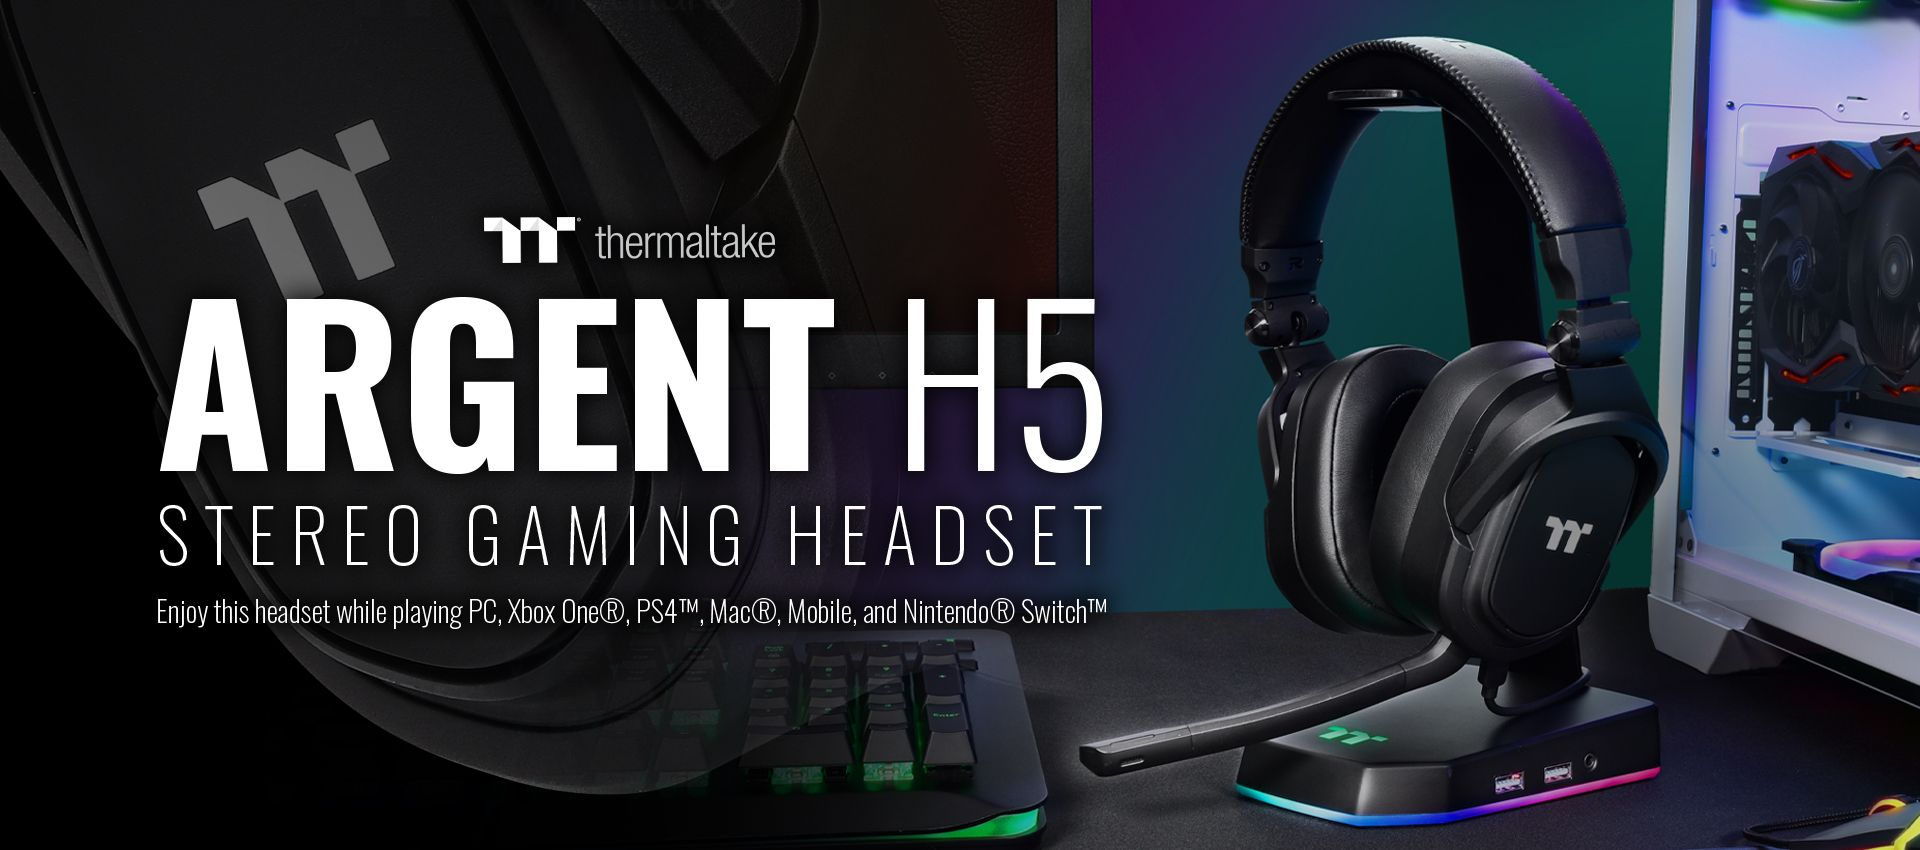 Argent H5 Stereo Gaming Headset